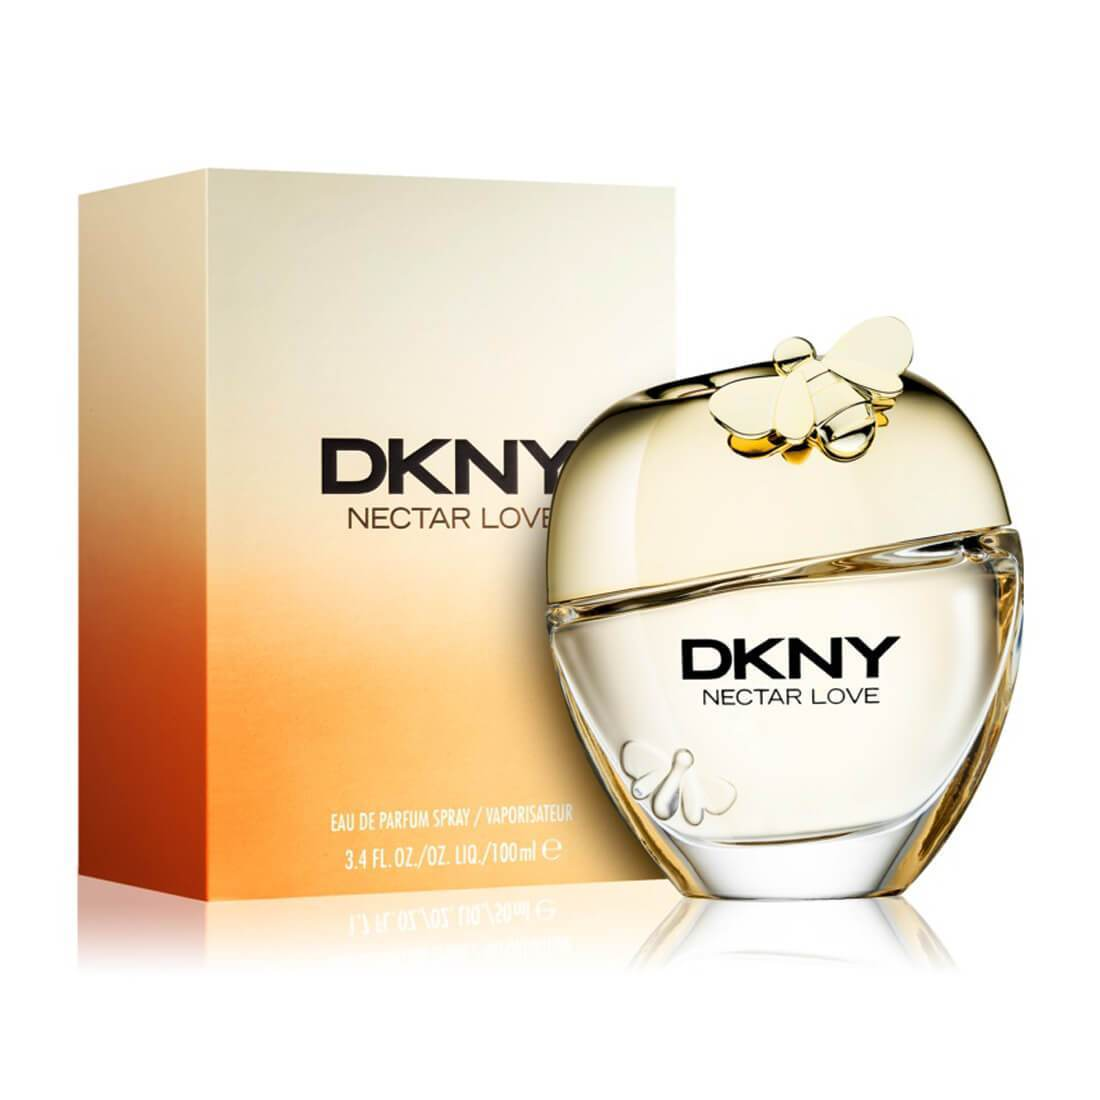 Dkny Nectar Love EDP Perfume - 100ml